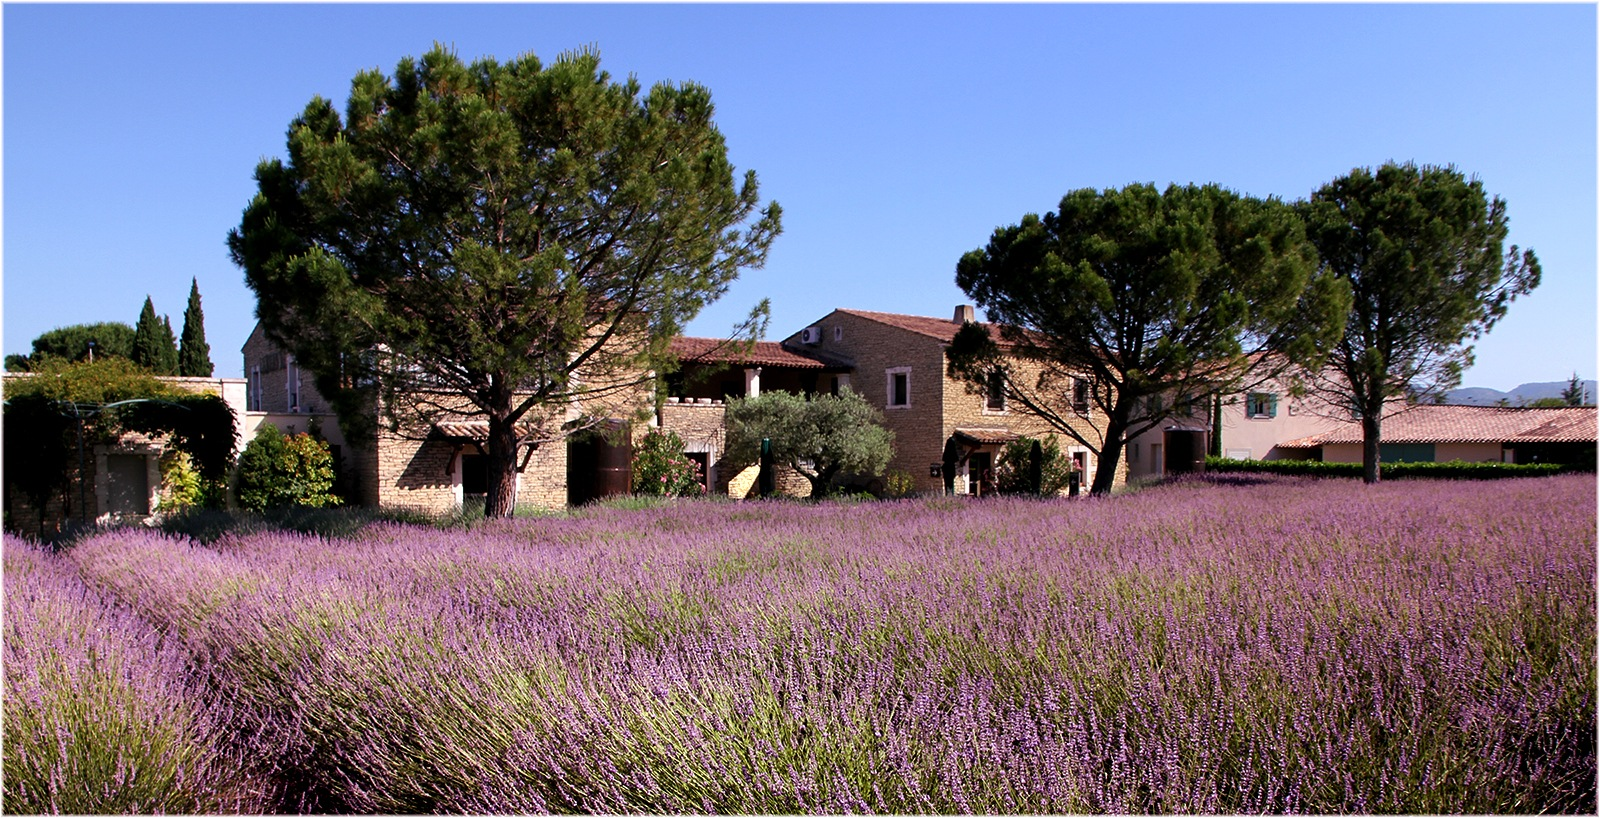 Provence by patzy